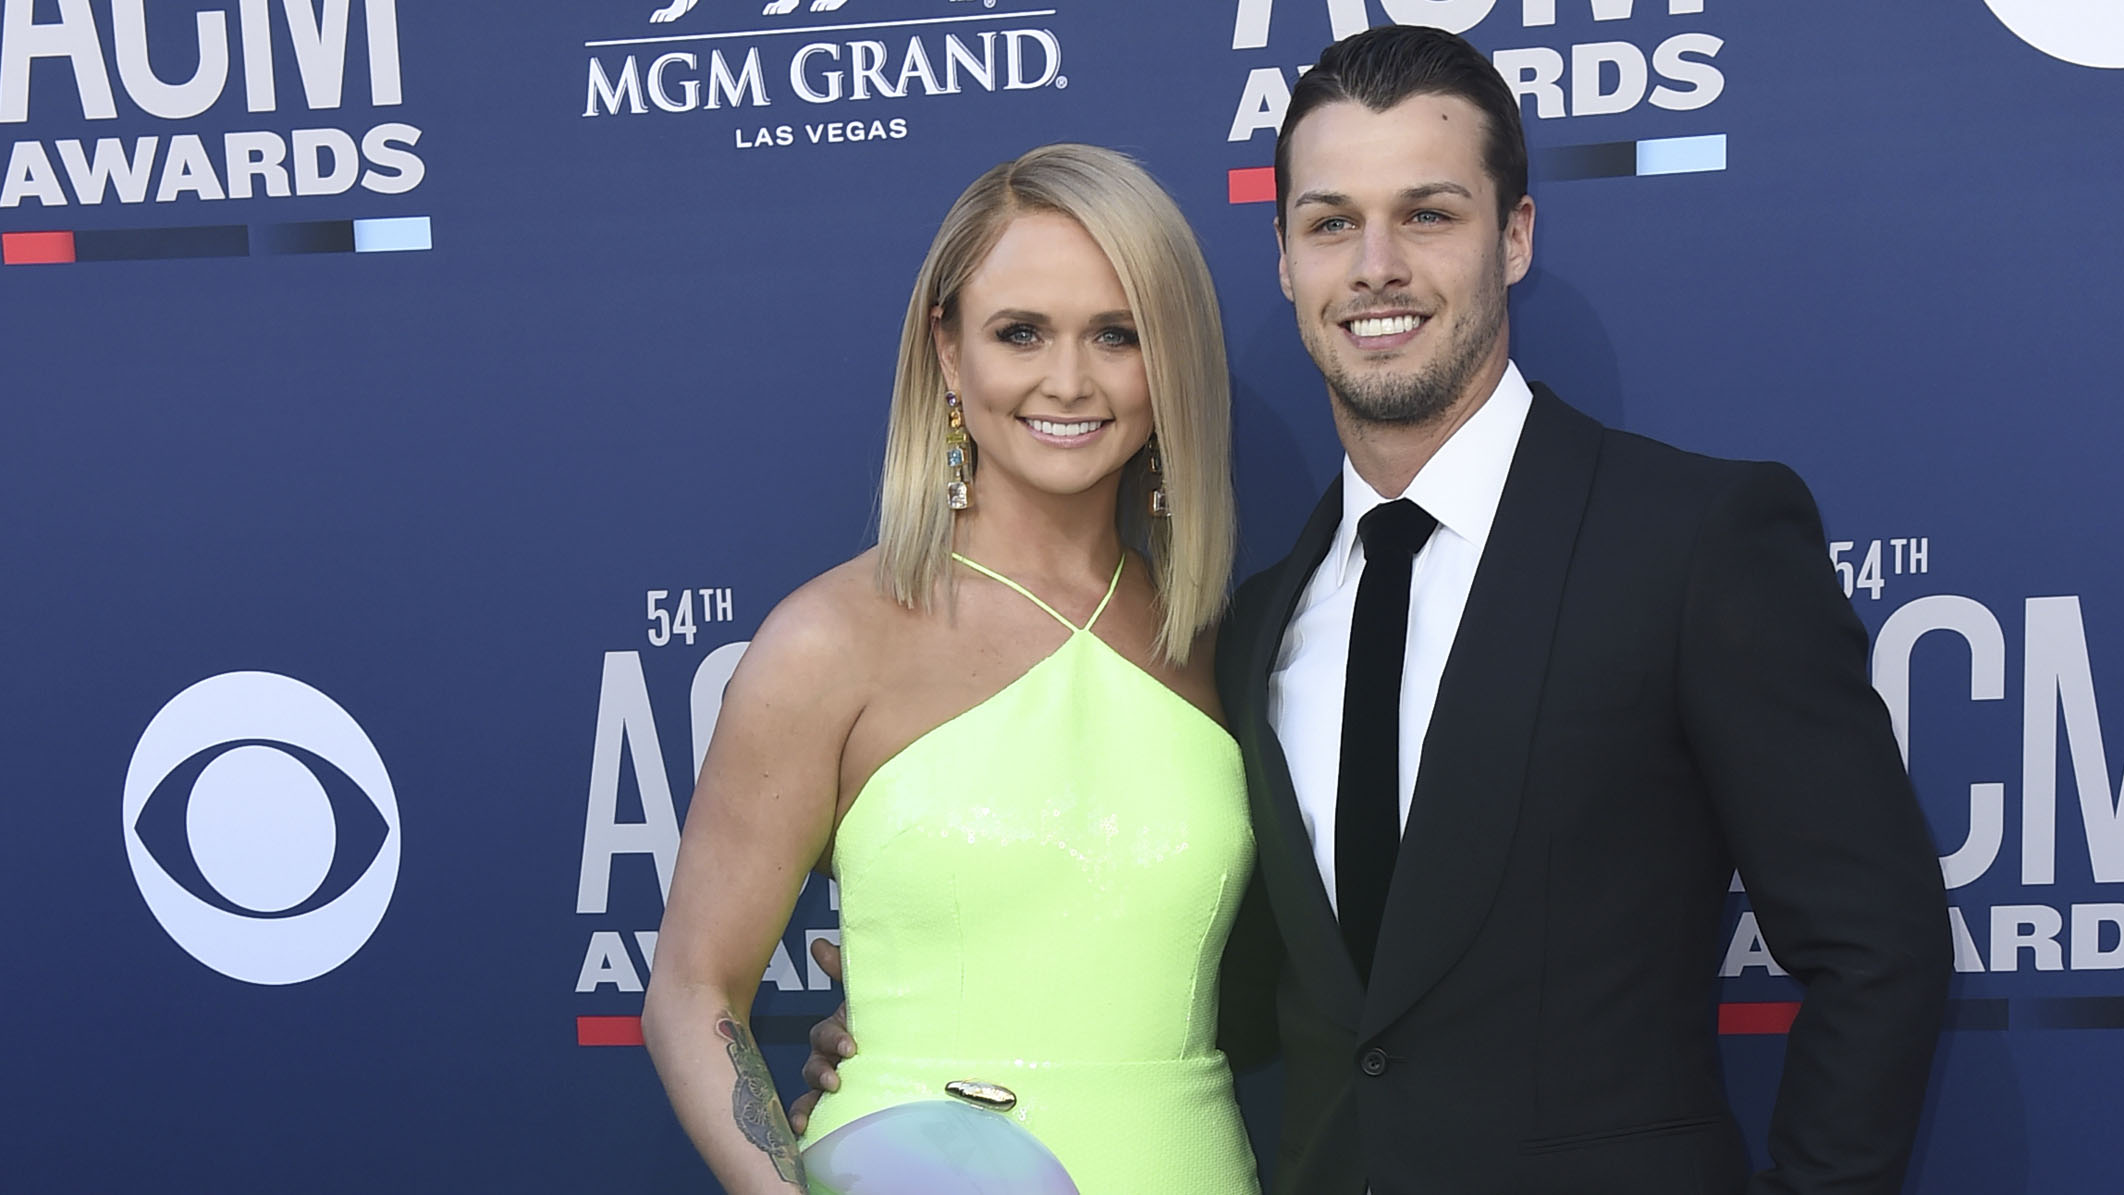 Image result for acm awards miranda lambert 2019